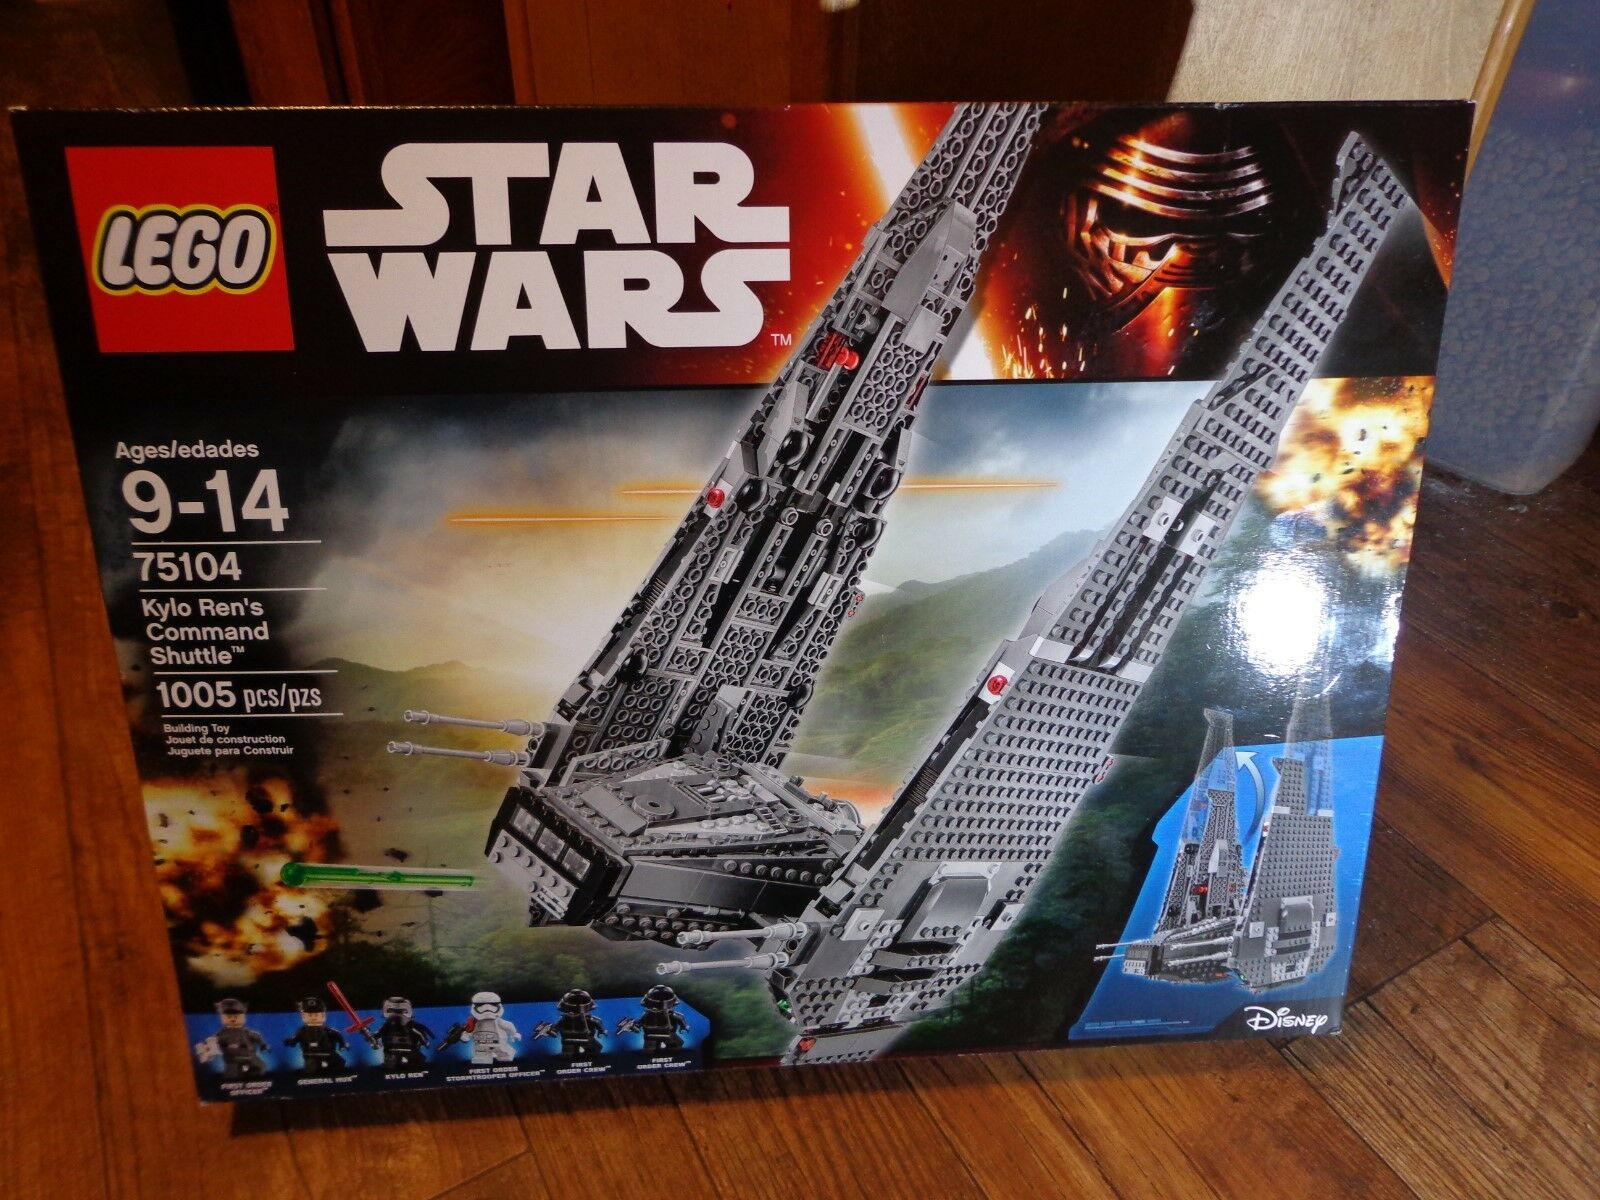 2015 LEGO--STAR WARS--KYLO REN'S COMMAND SHUTTLE SET (NEW) 75104